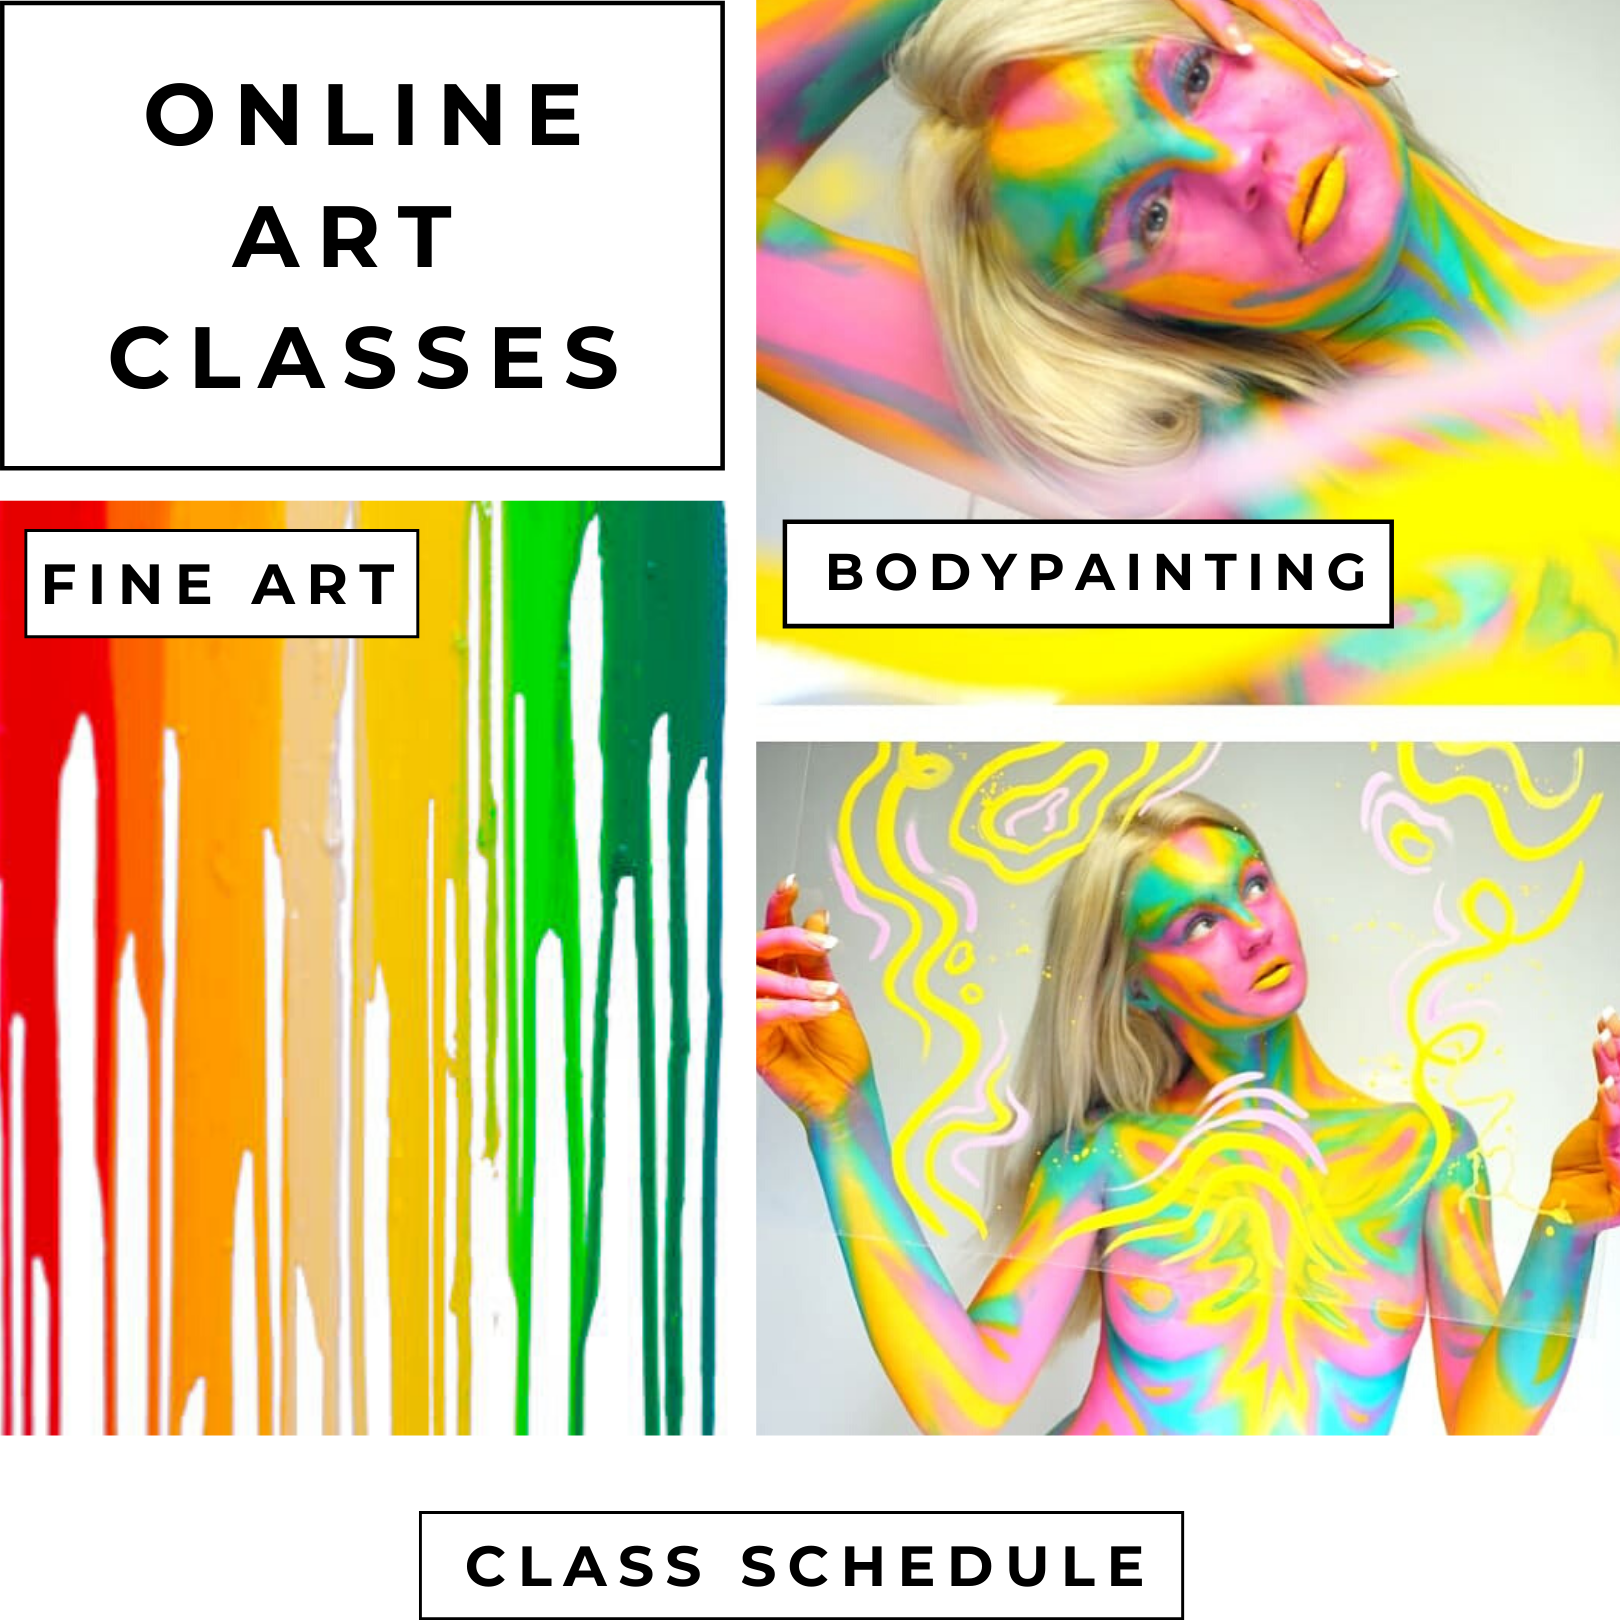 Online art classes with San Diego artist Lana Chromium. Lana Chromium Skin Wars winner will teach you how to paint with watercolors, oils, acrylics, ink, drawing and also art of bodypainting in easy step by step practice classes. Online art course for professionals & beginners.